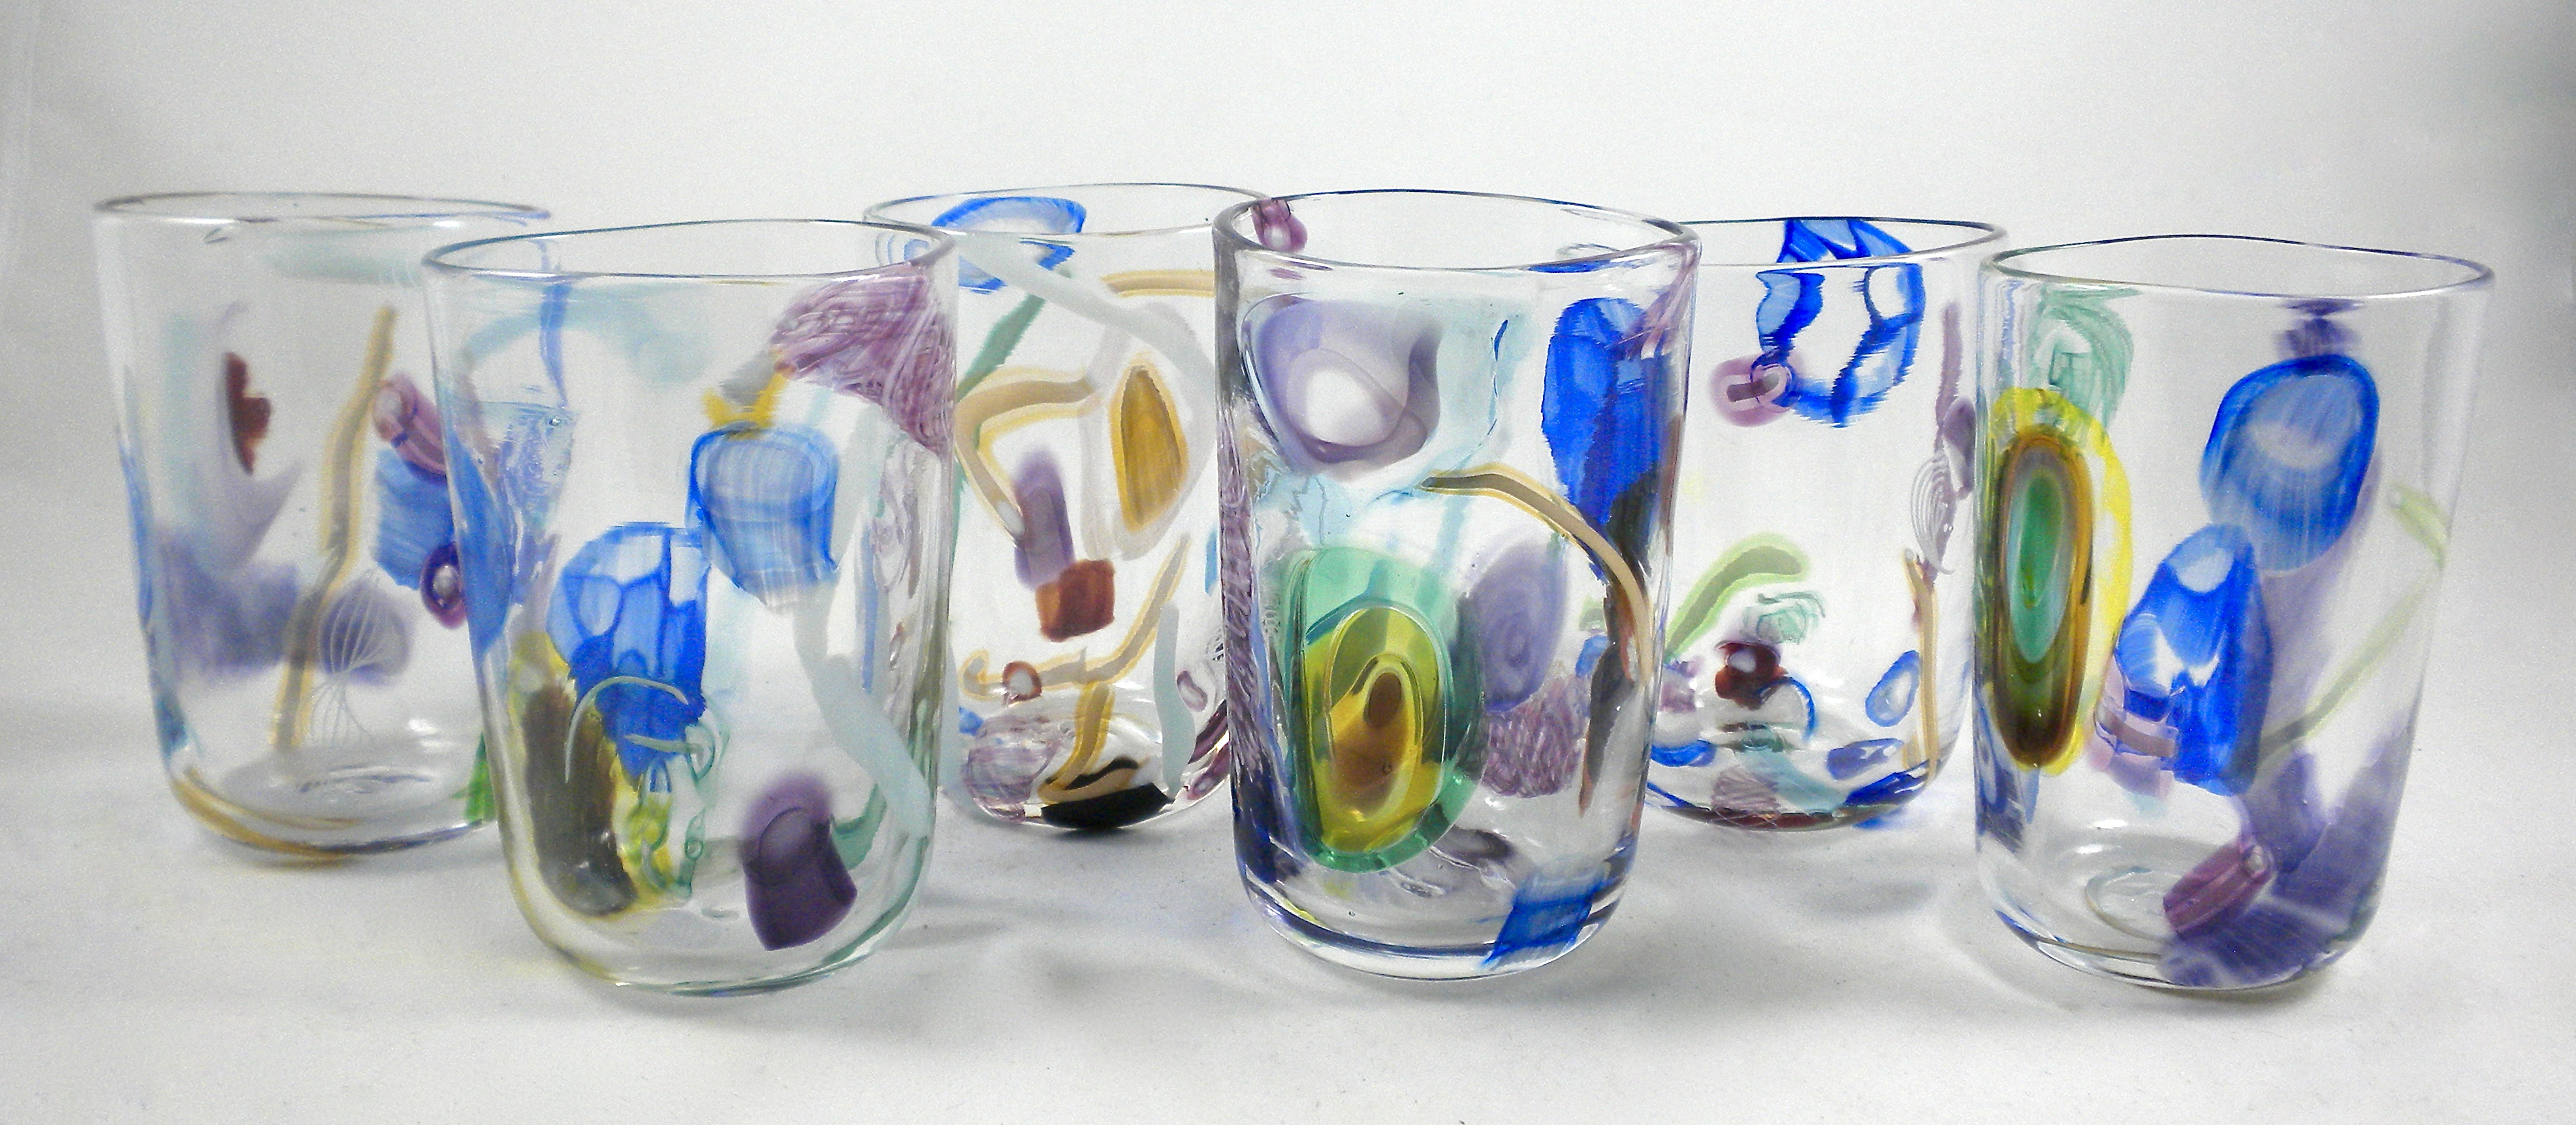 Wild Party Glasses